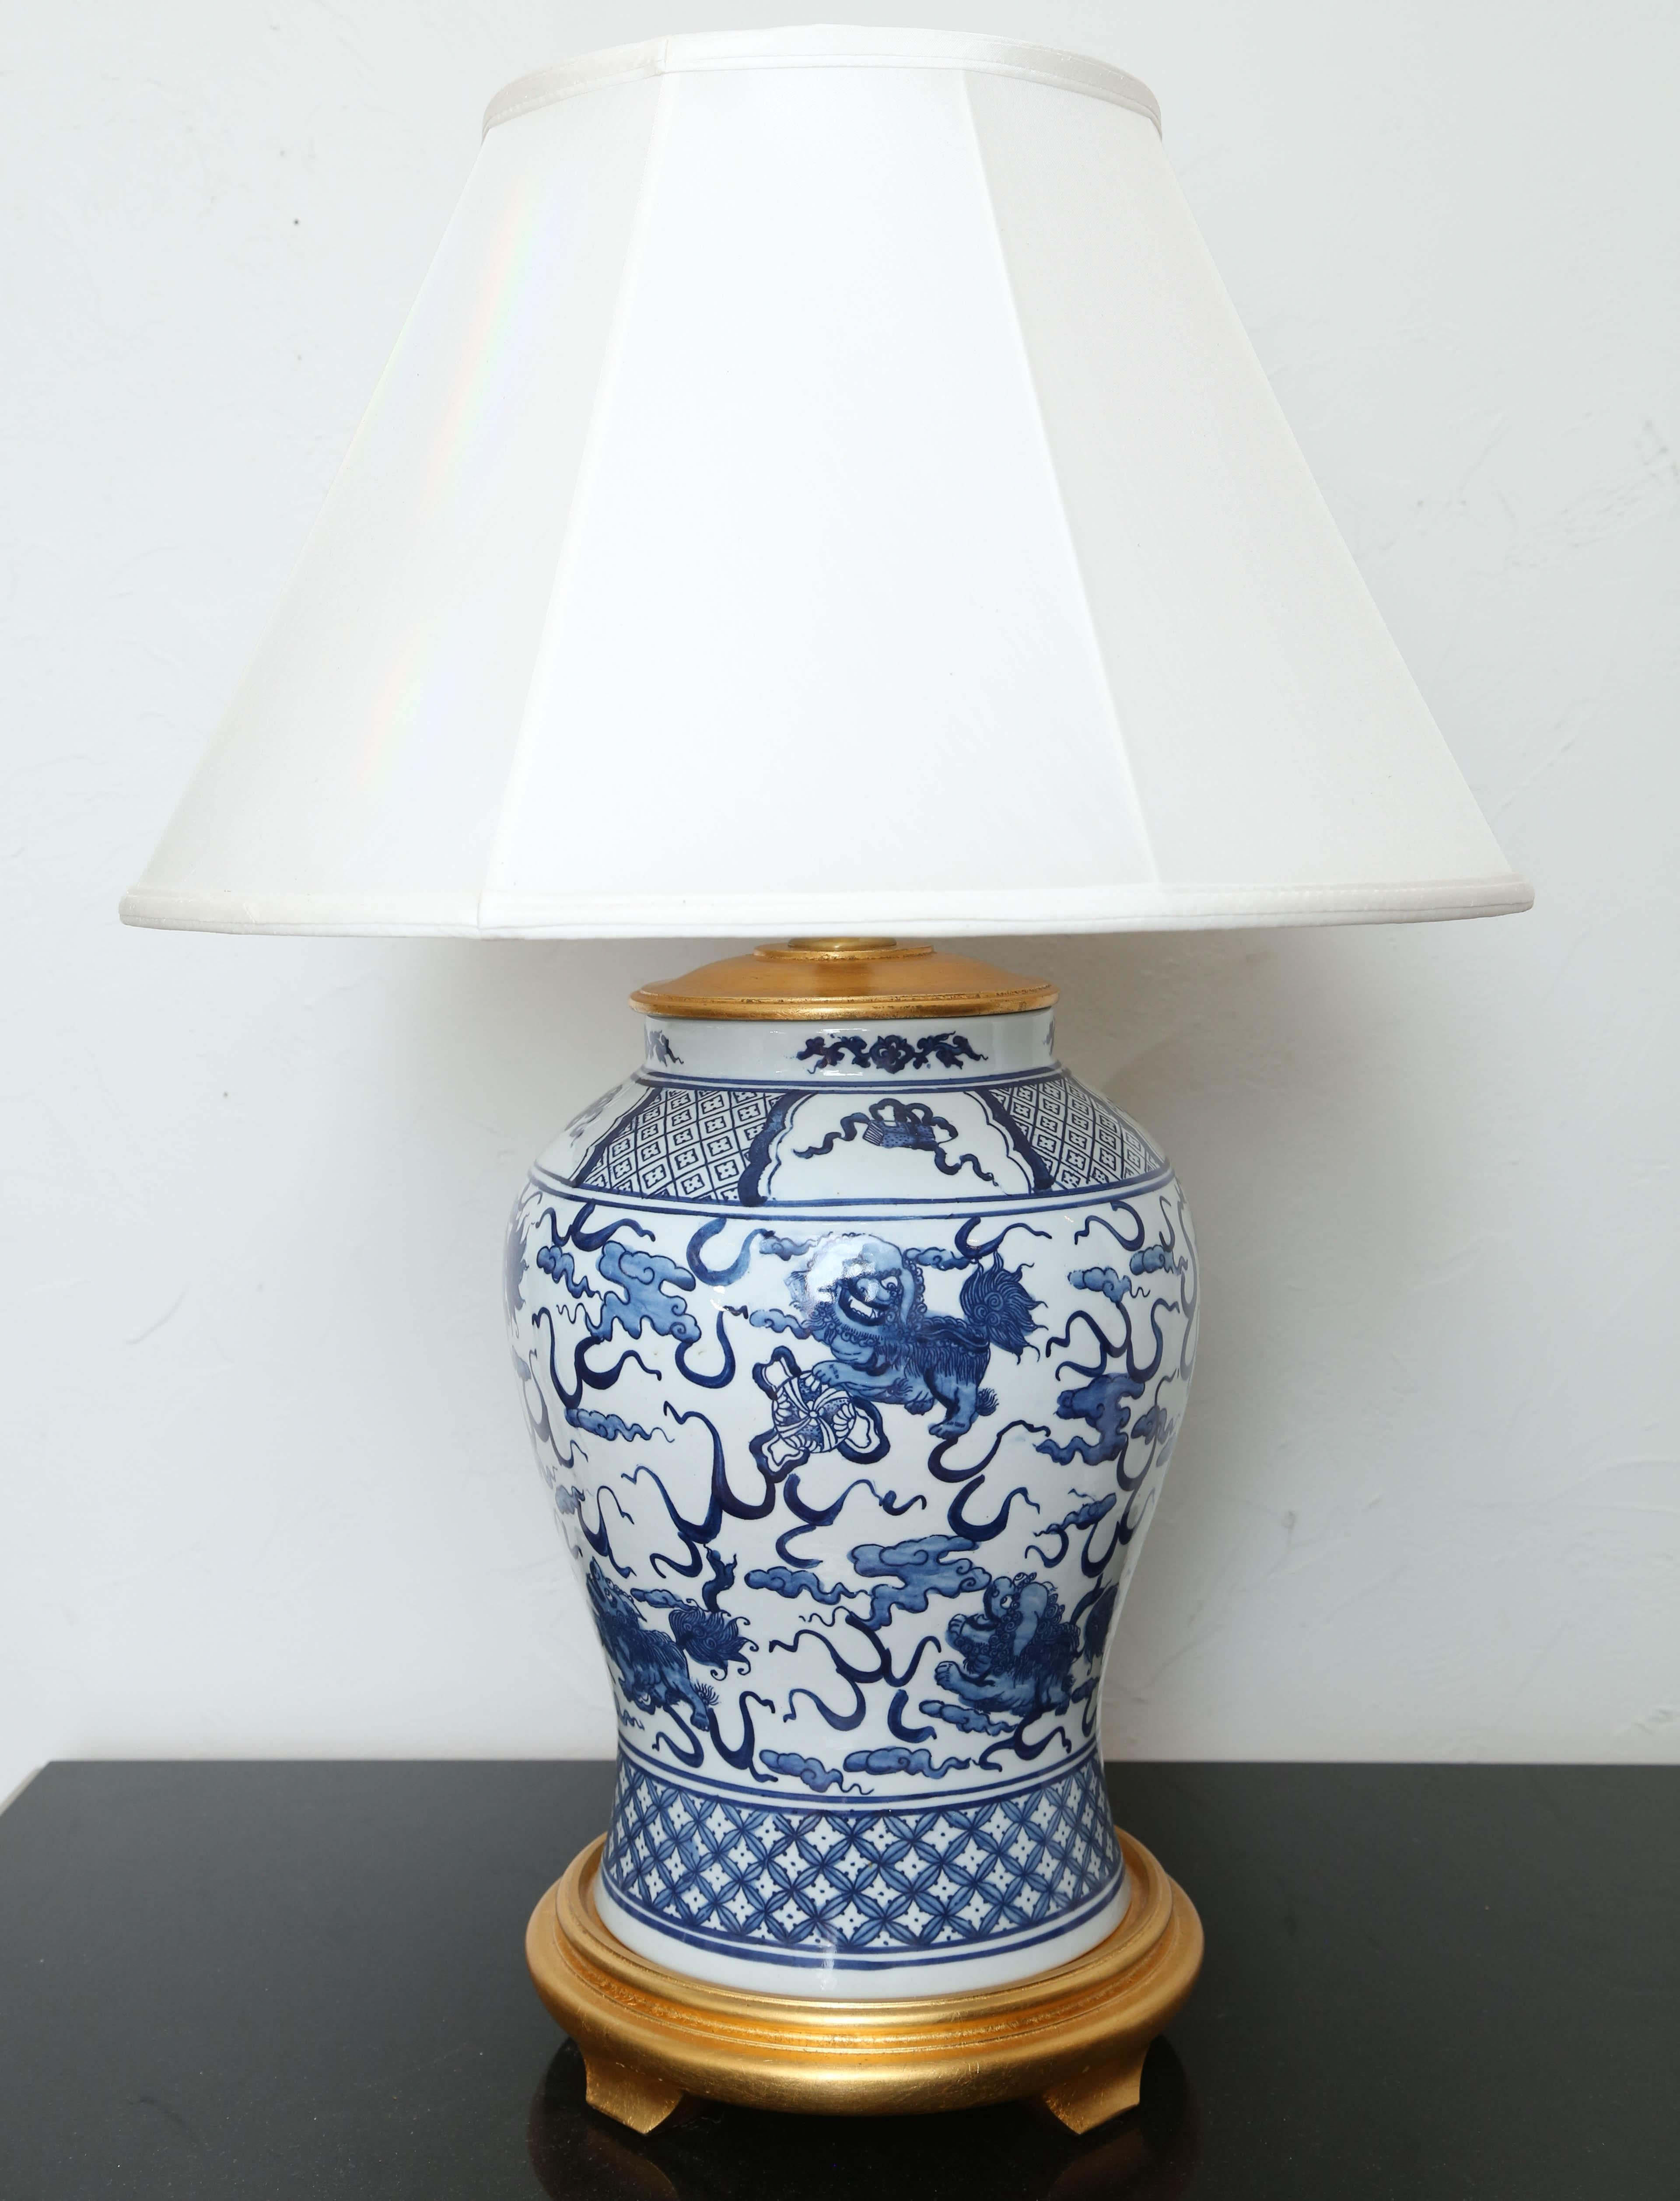 Vintage Blue And White Ginger Jar Lamp By Ralph Lauren At